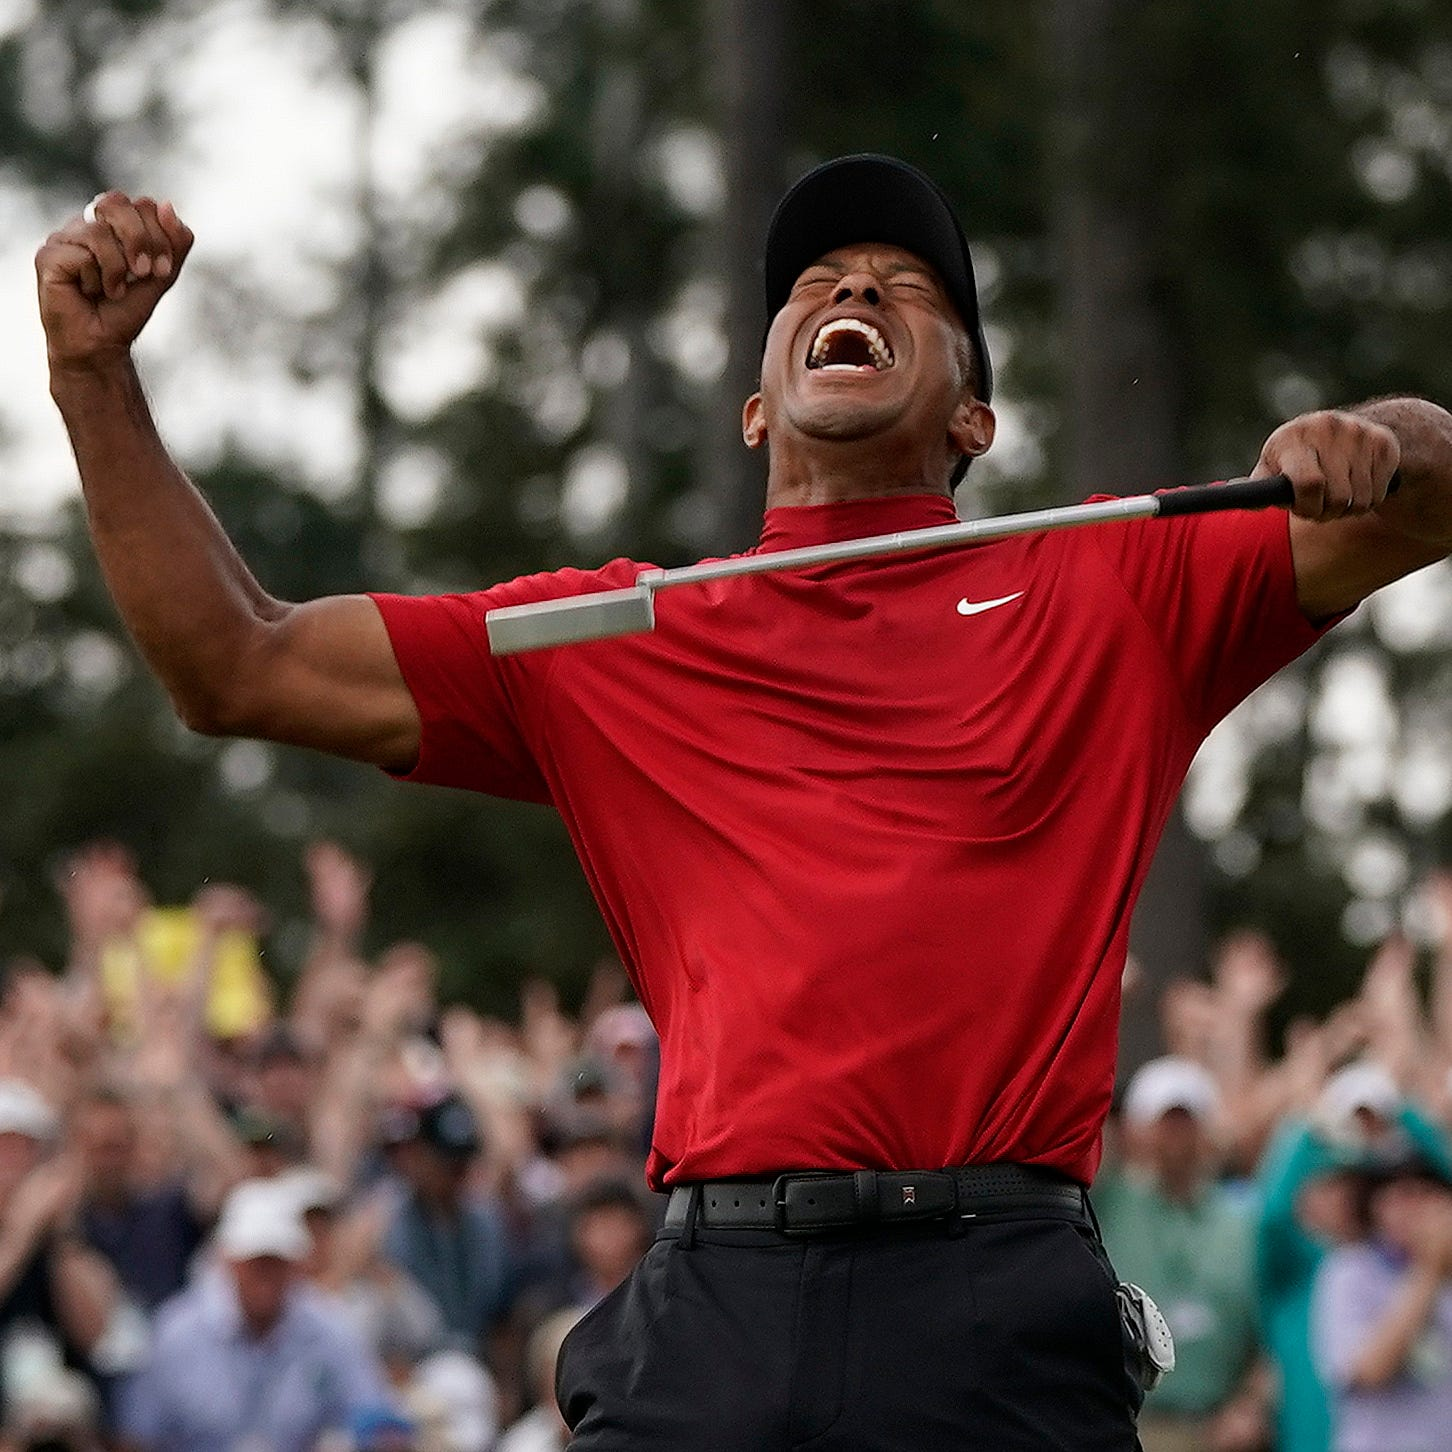 He's back! Tiger Woods wins first Masters since '05